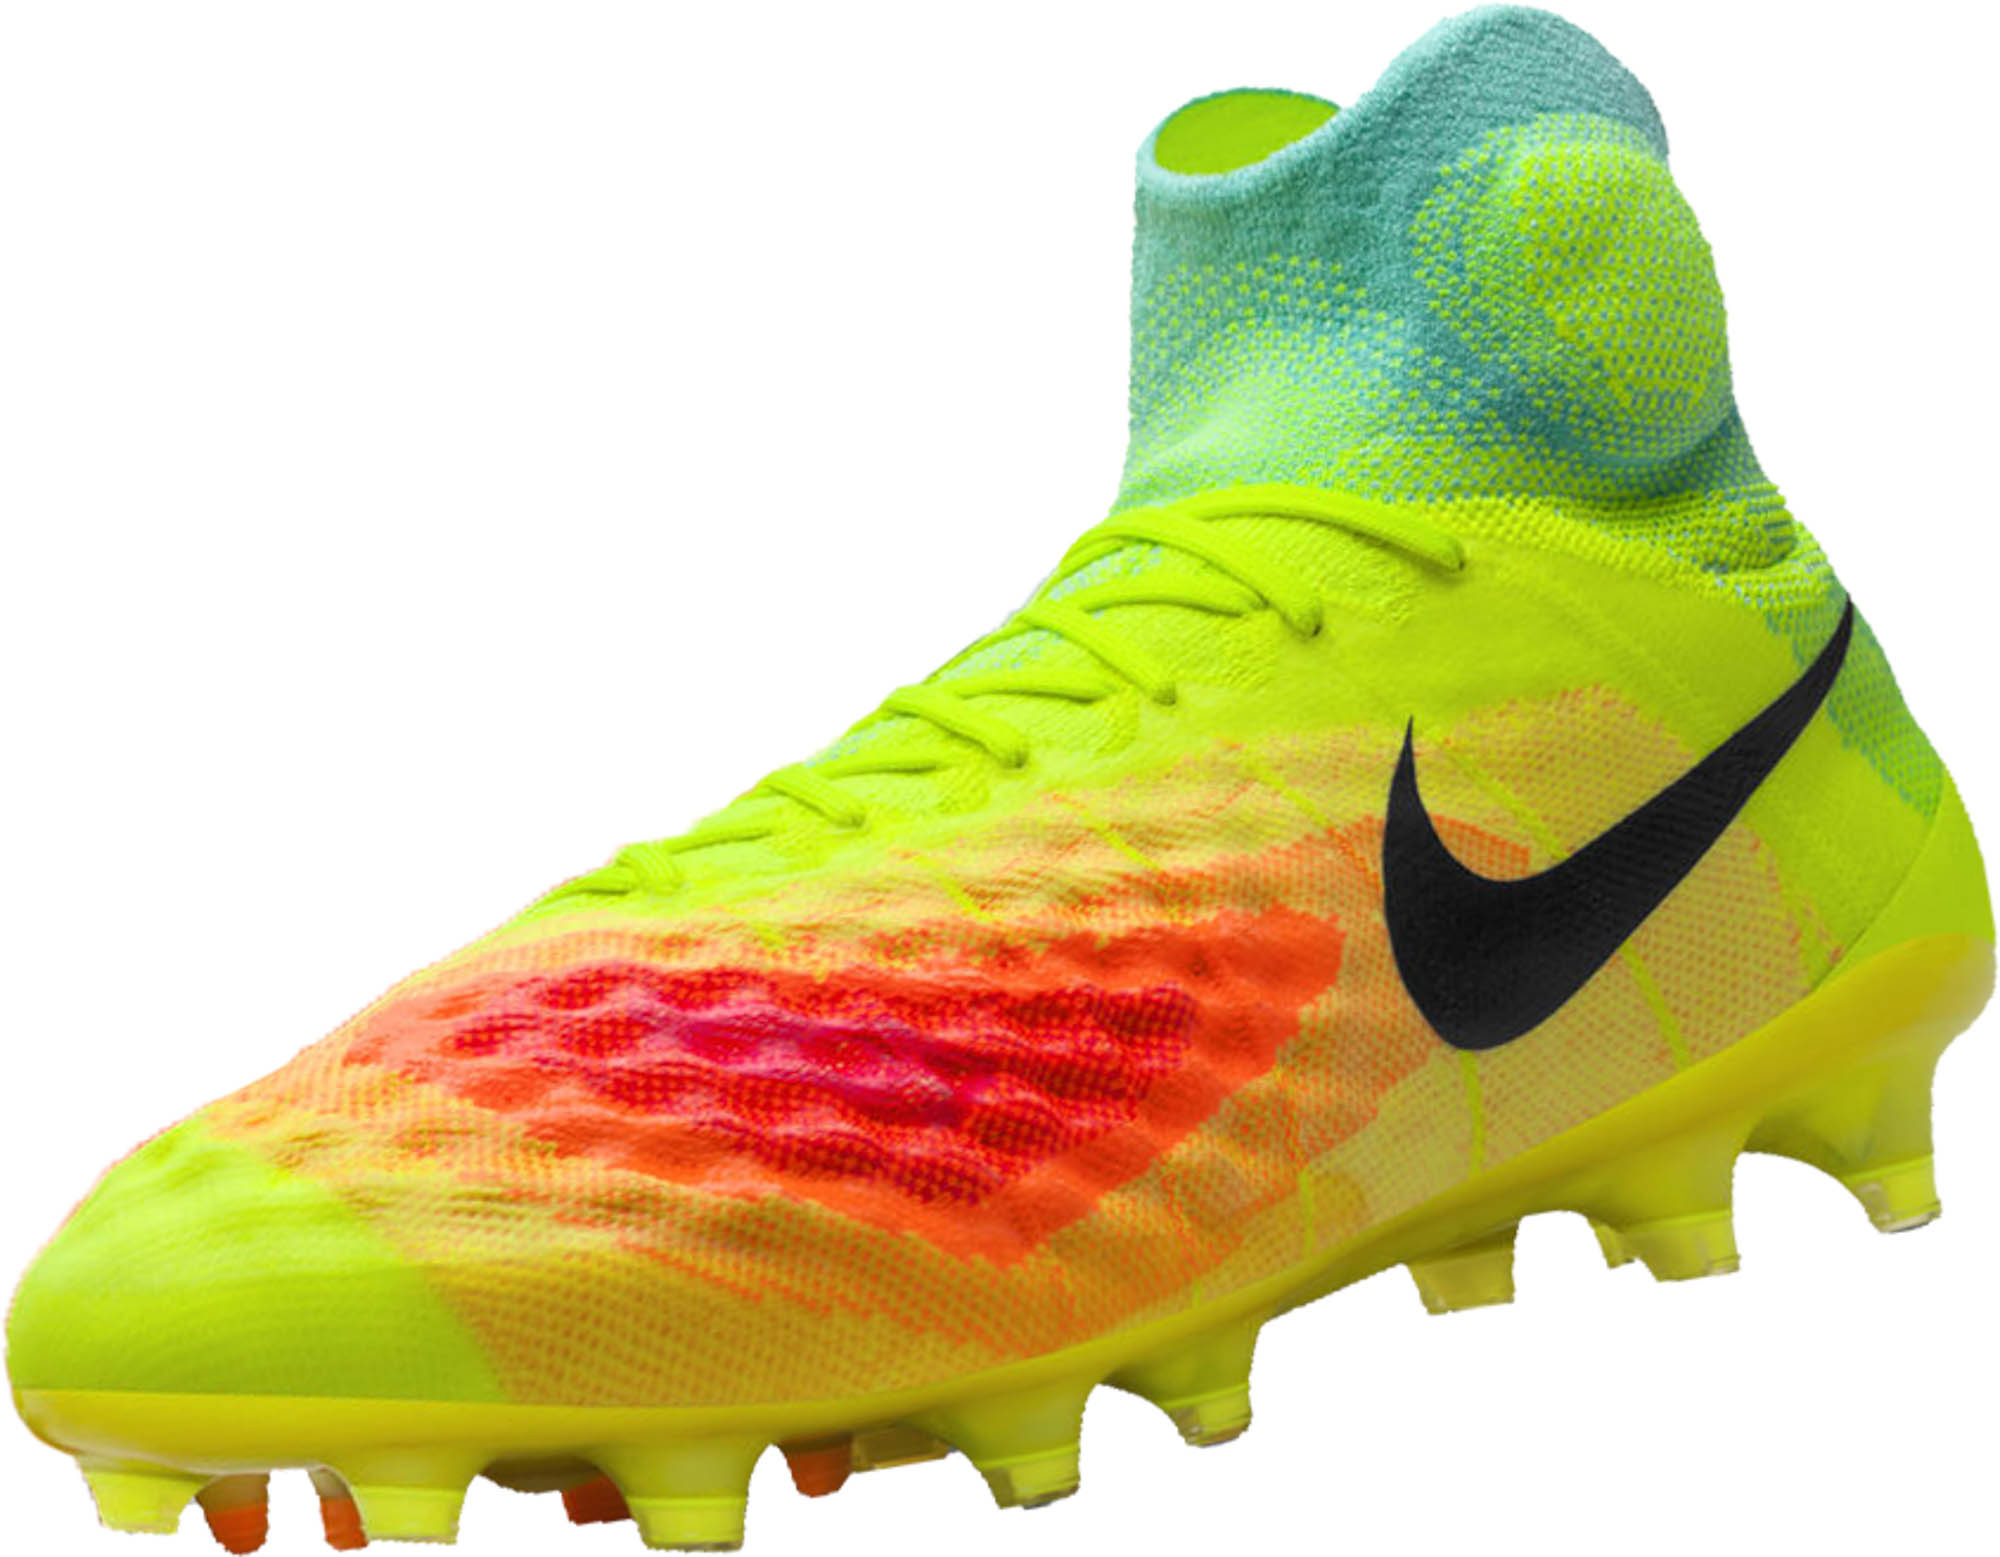 orange yellow womens nike magista cleats shoes. Black Bedroom Furniture Sets. Home Design Ideas